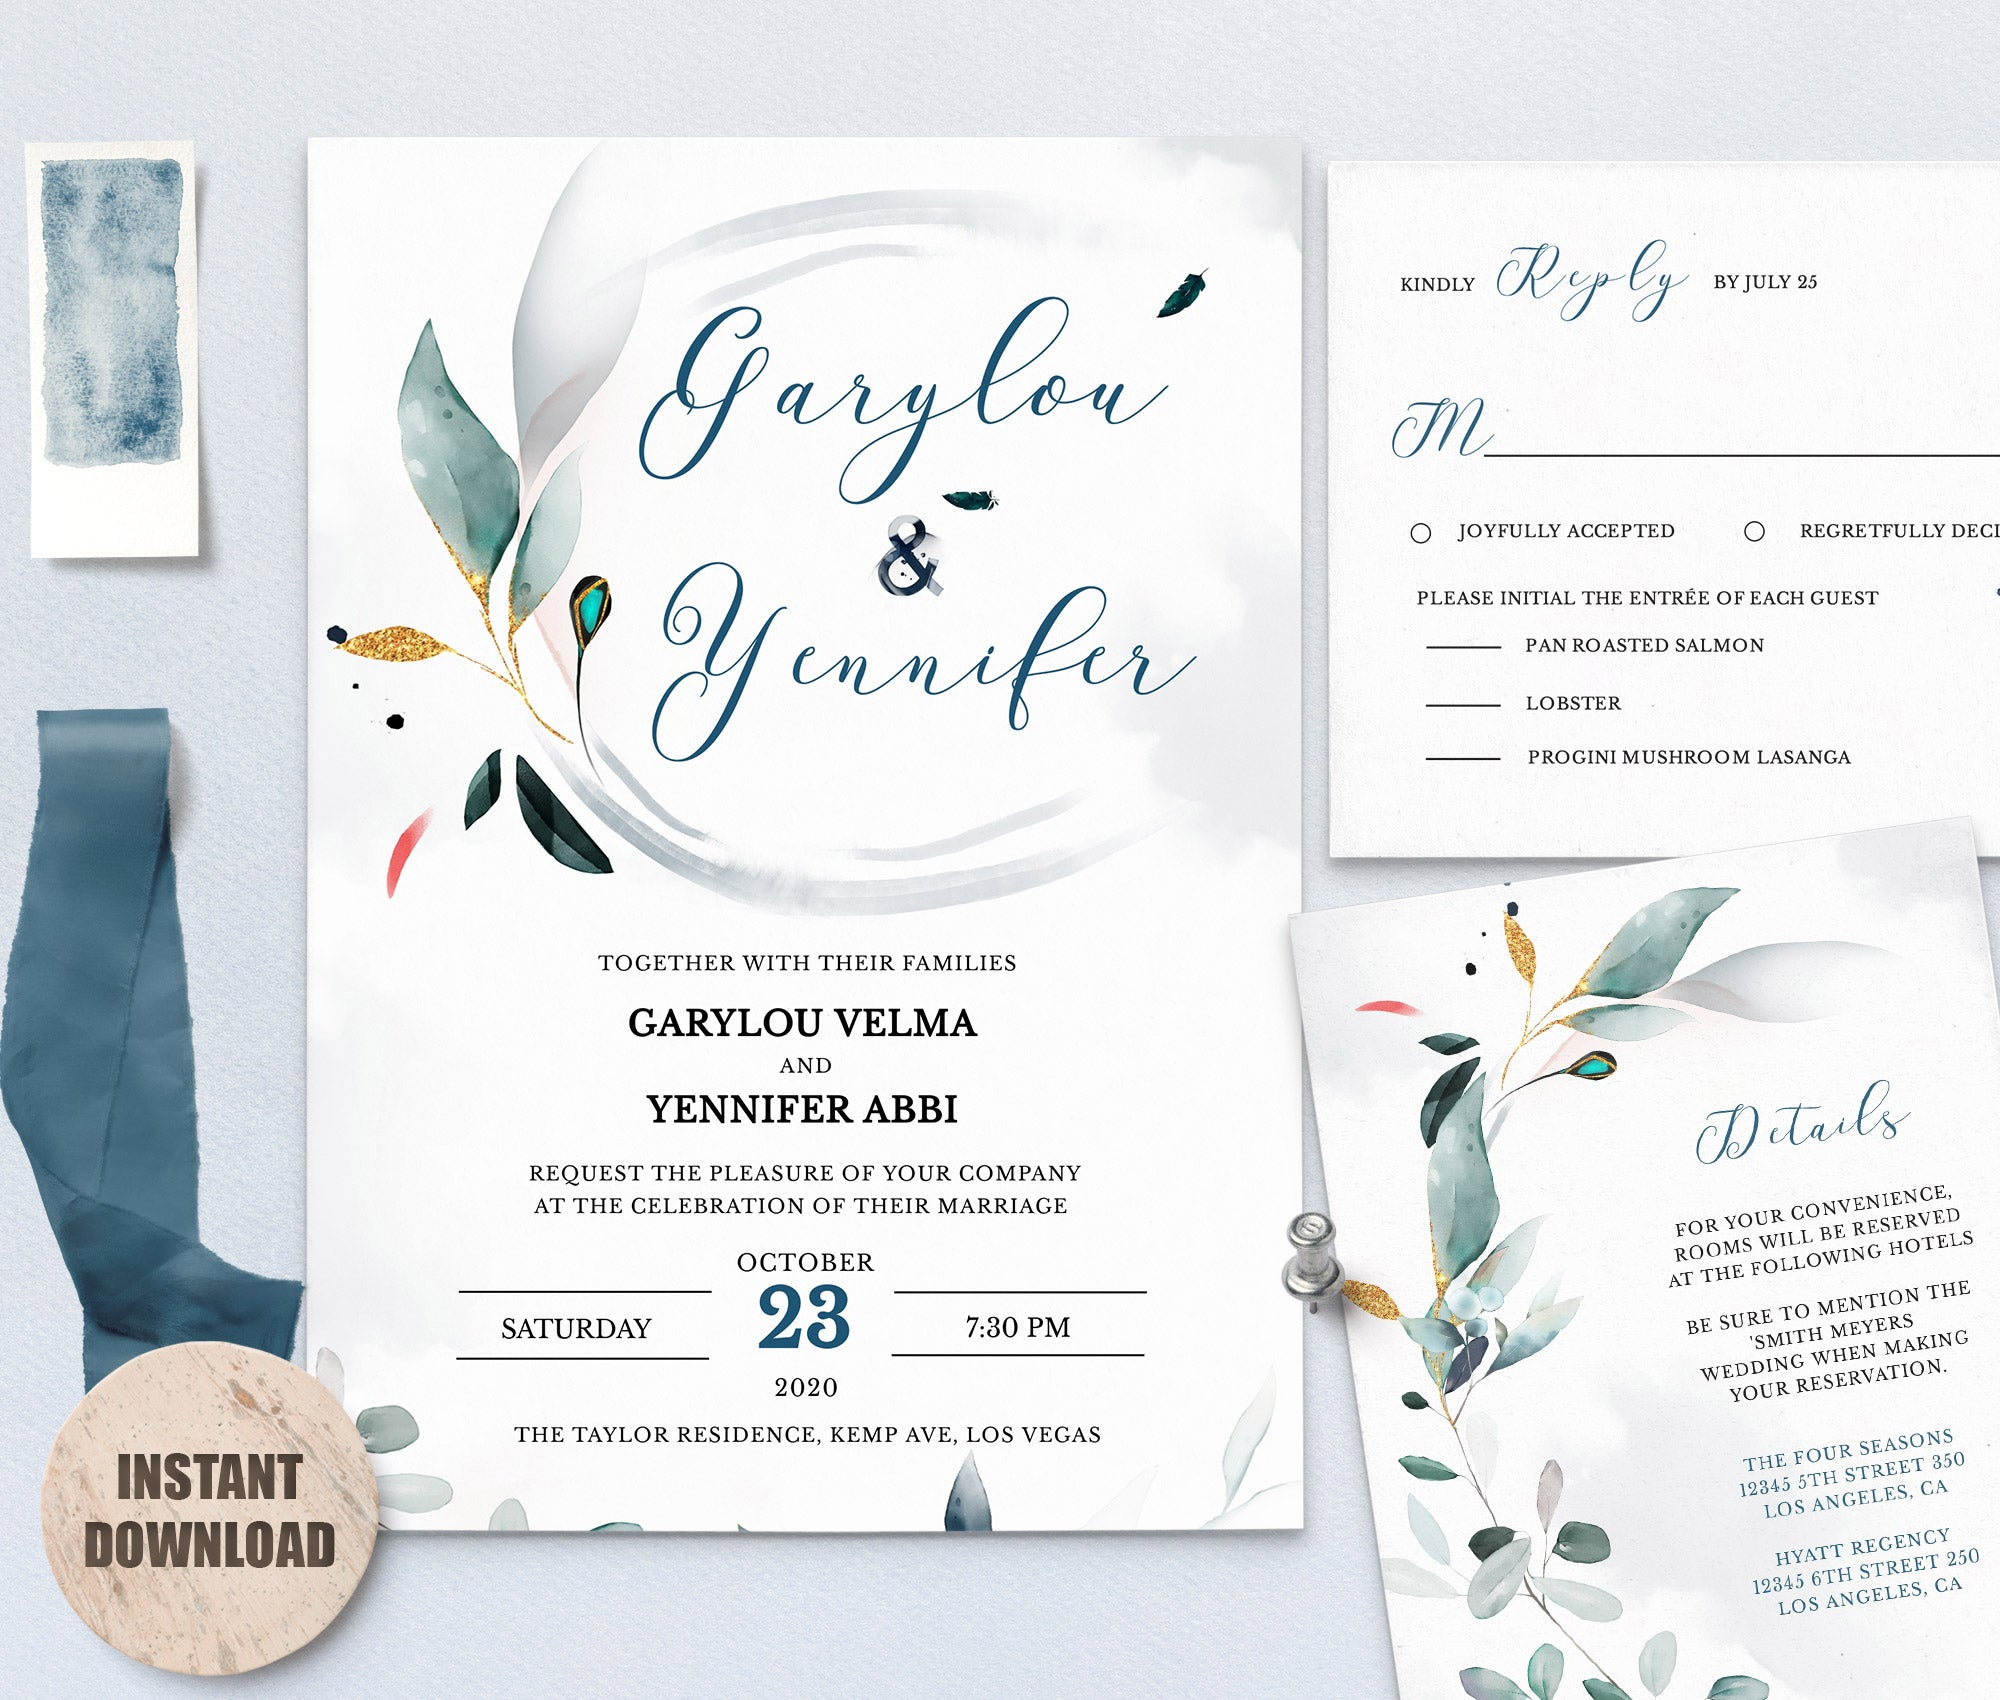 SPMR - Wedding Template Bundles set 5 - Greenlanderdesign